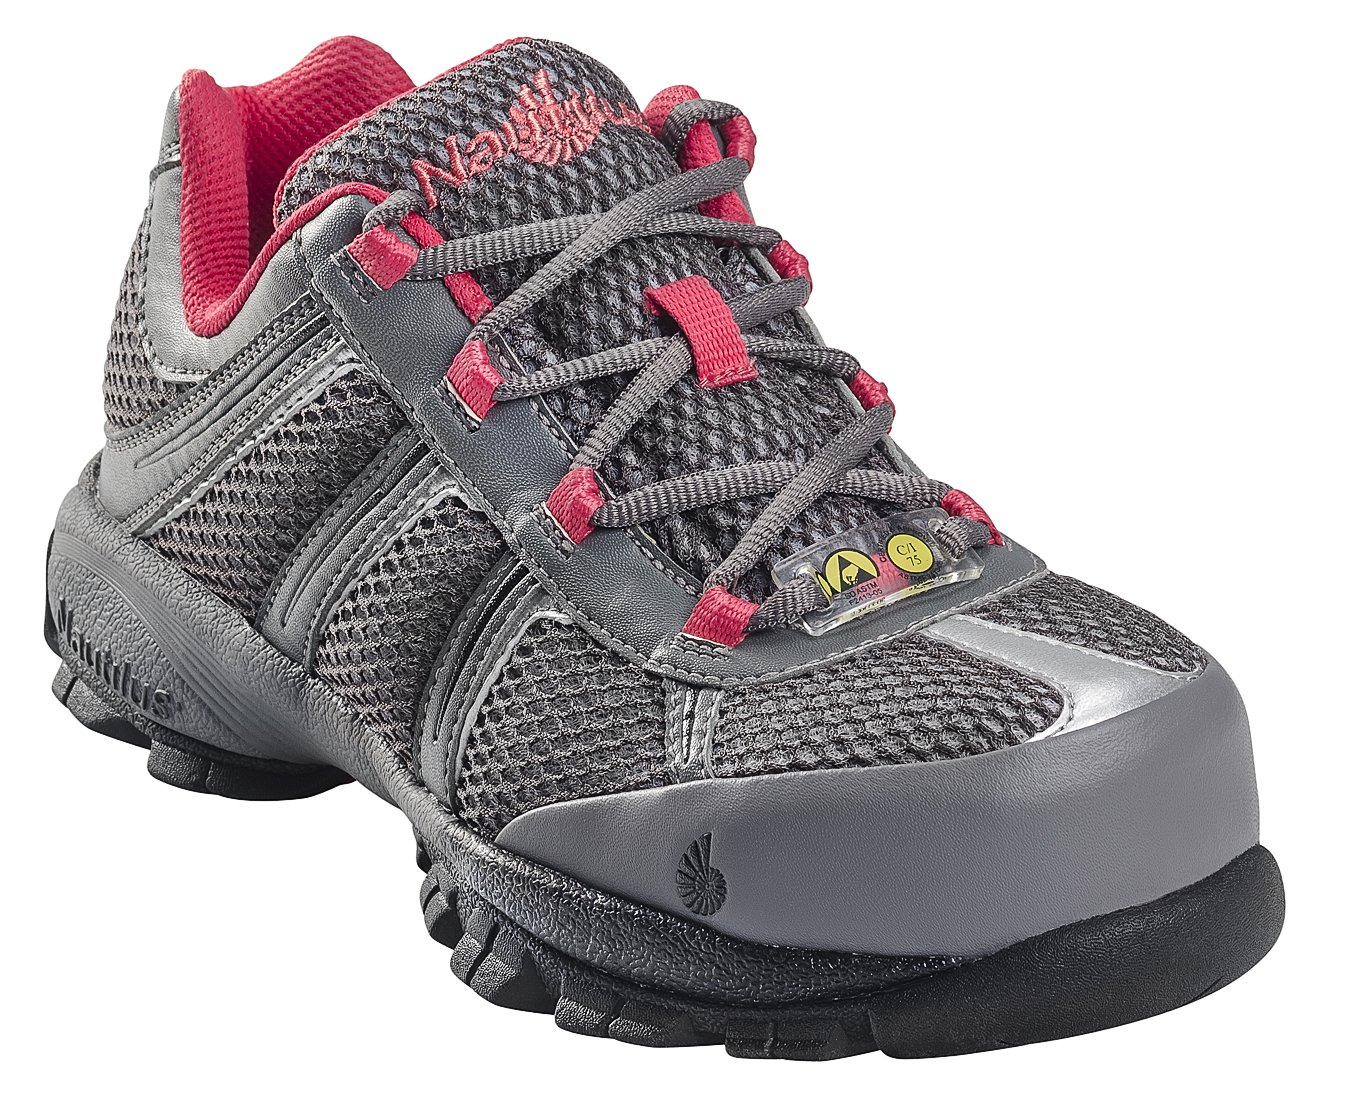 Nautilus Safety Footwear Women's 1393 Work Shoe,Grey,8.5 W US